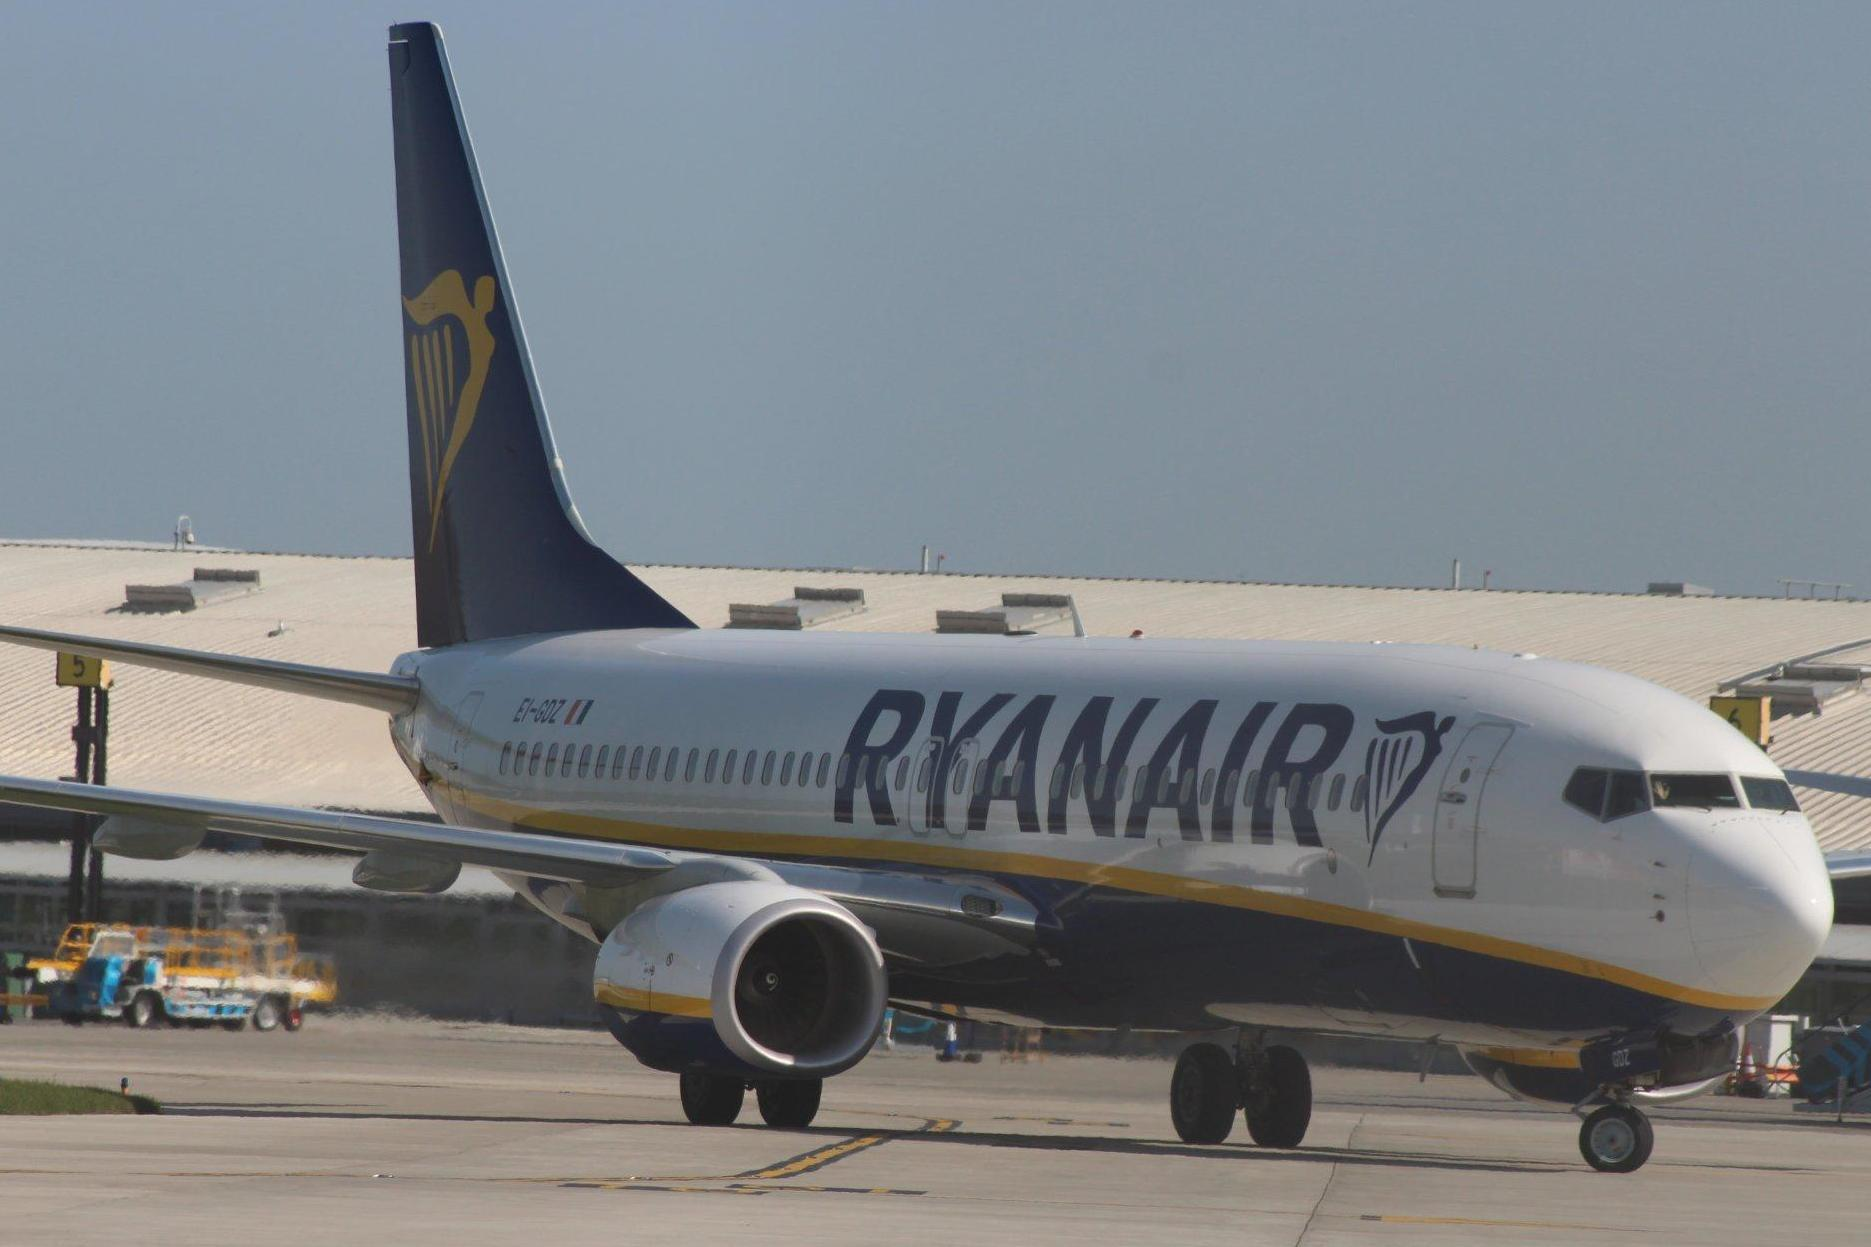 Ryanair strikes: Airline has 'blown the chance' of settling pilots' strike, says union